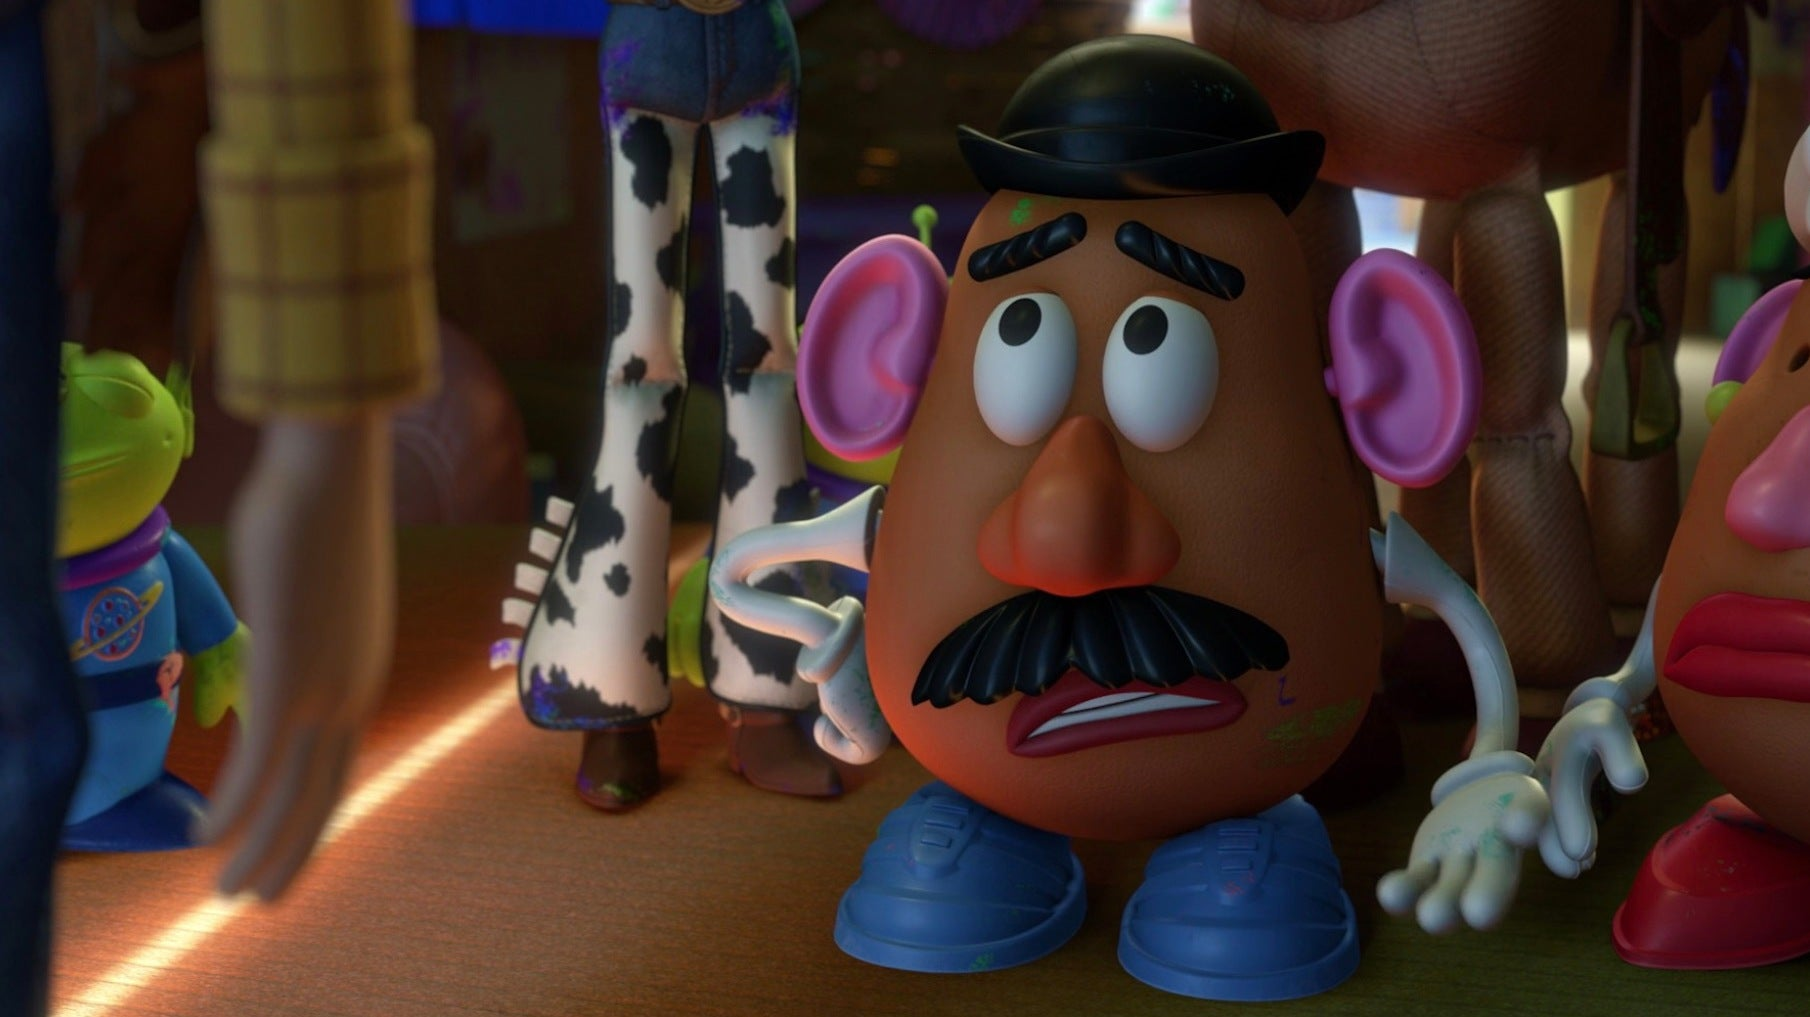 Toy Story 4 Uses Past Audio To Craft A Posthumous Don Rickles Performance